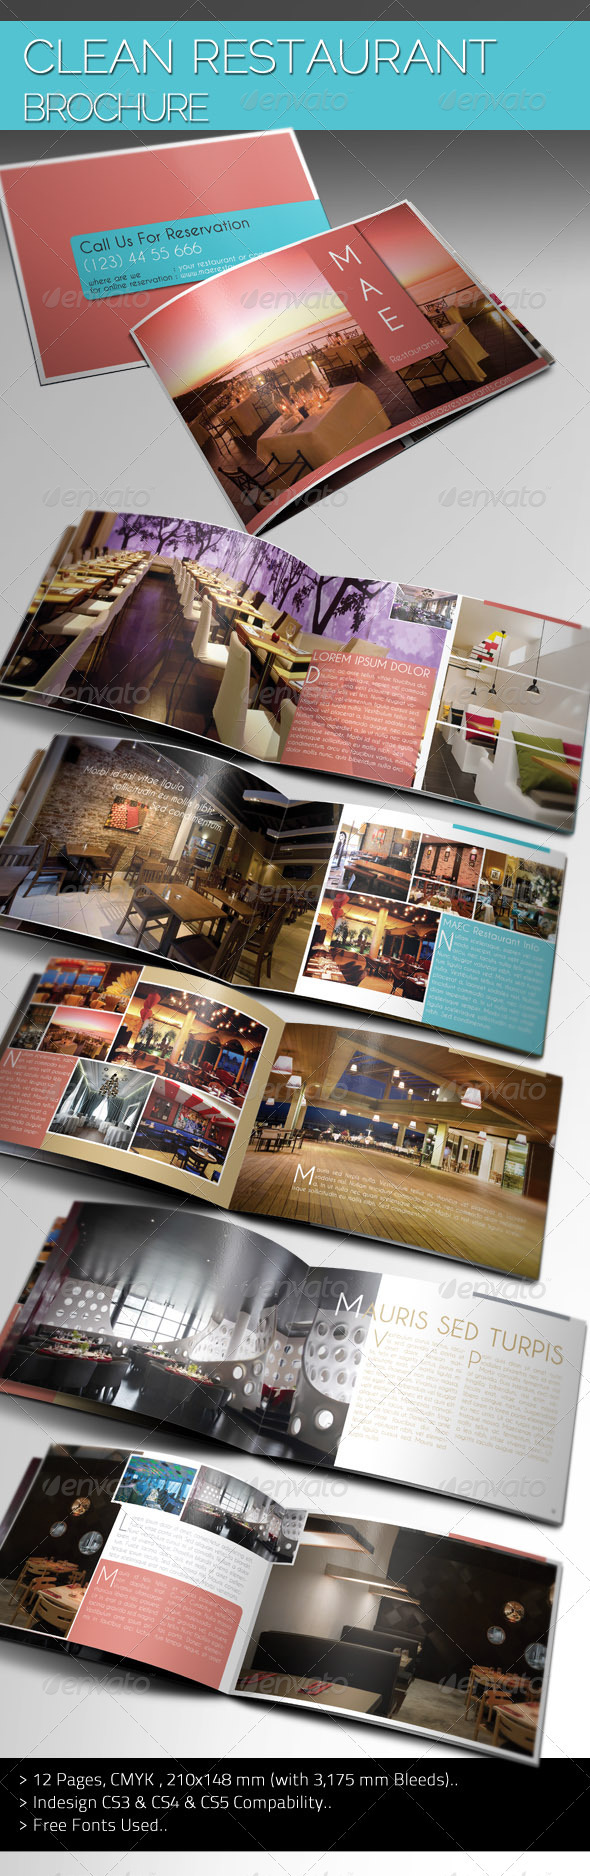 Clean Restaurant Brochure - Corporate Brochures